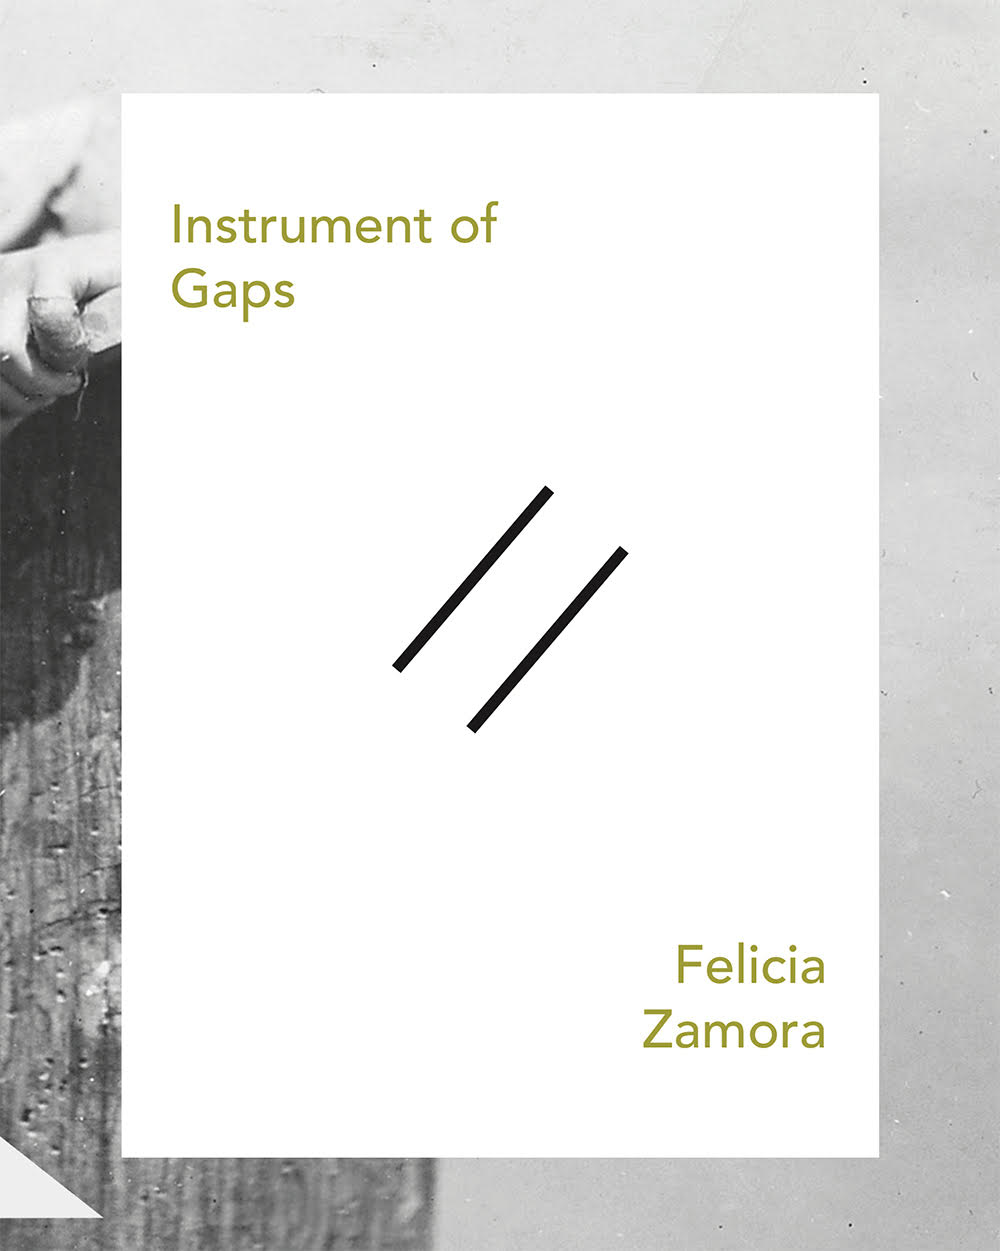 Instrument of Gaps